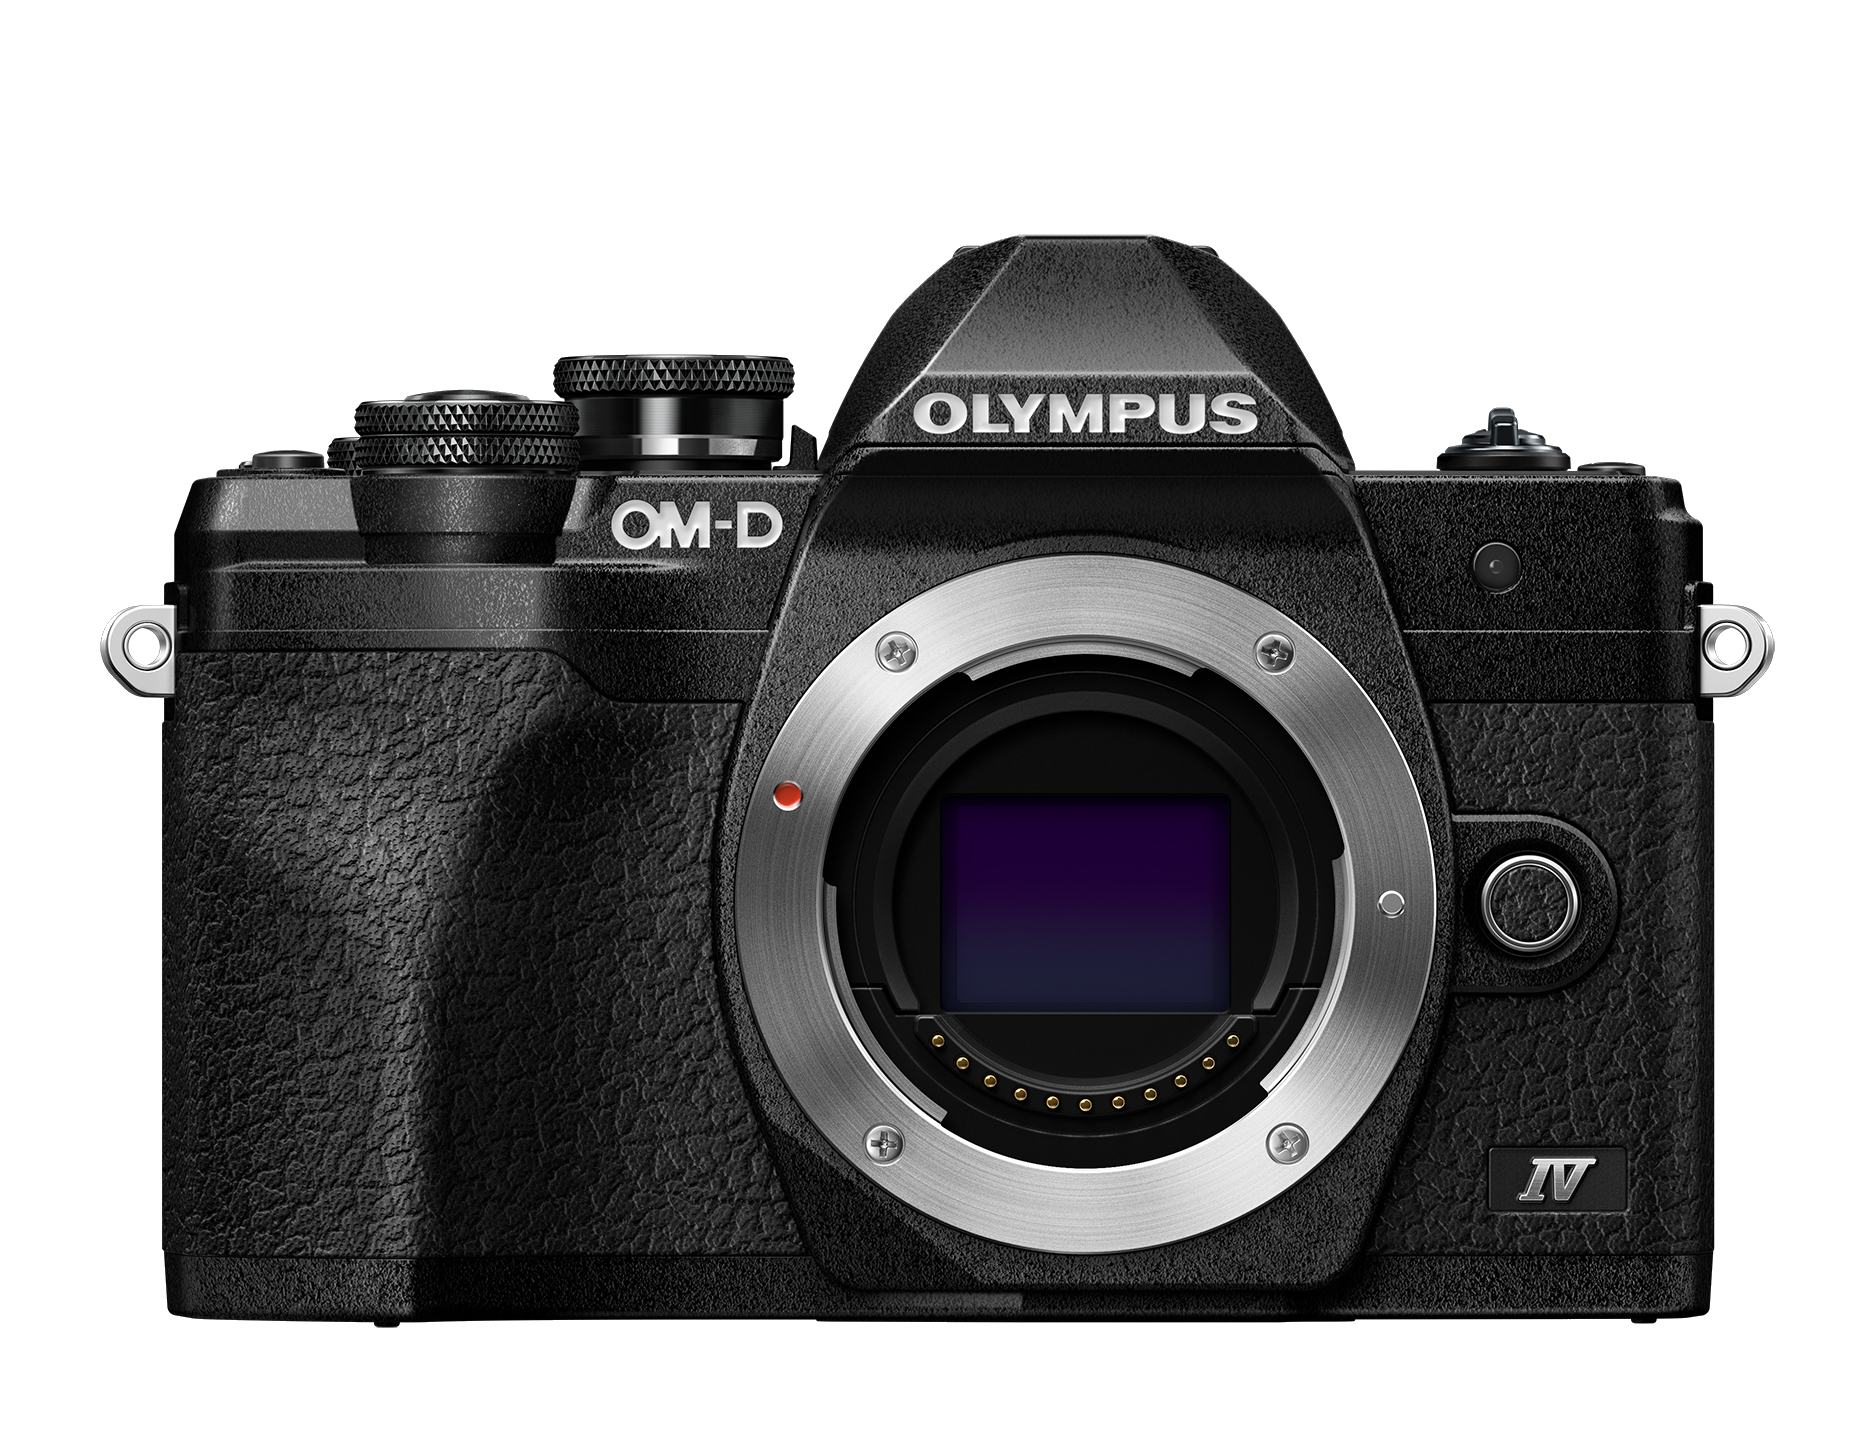 Фотоаппарат Olympus OM-D E-M10 Mark IV Body черный (V207130BE000) фото